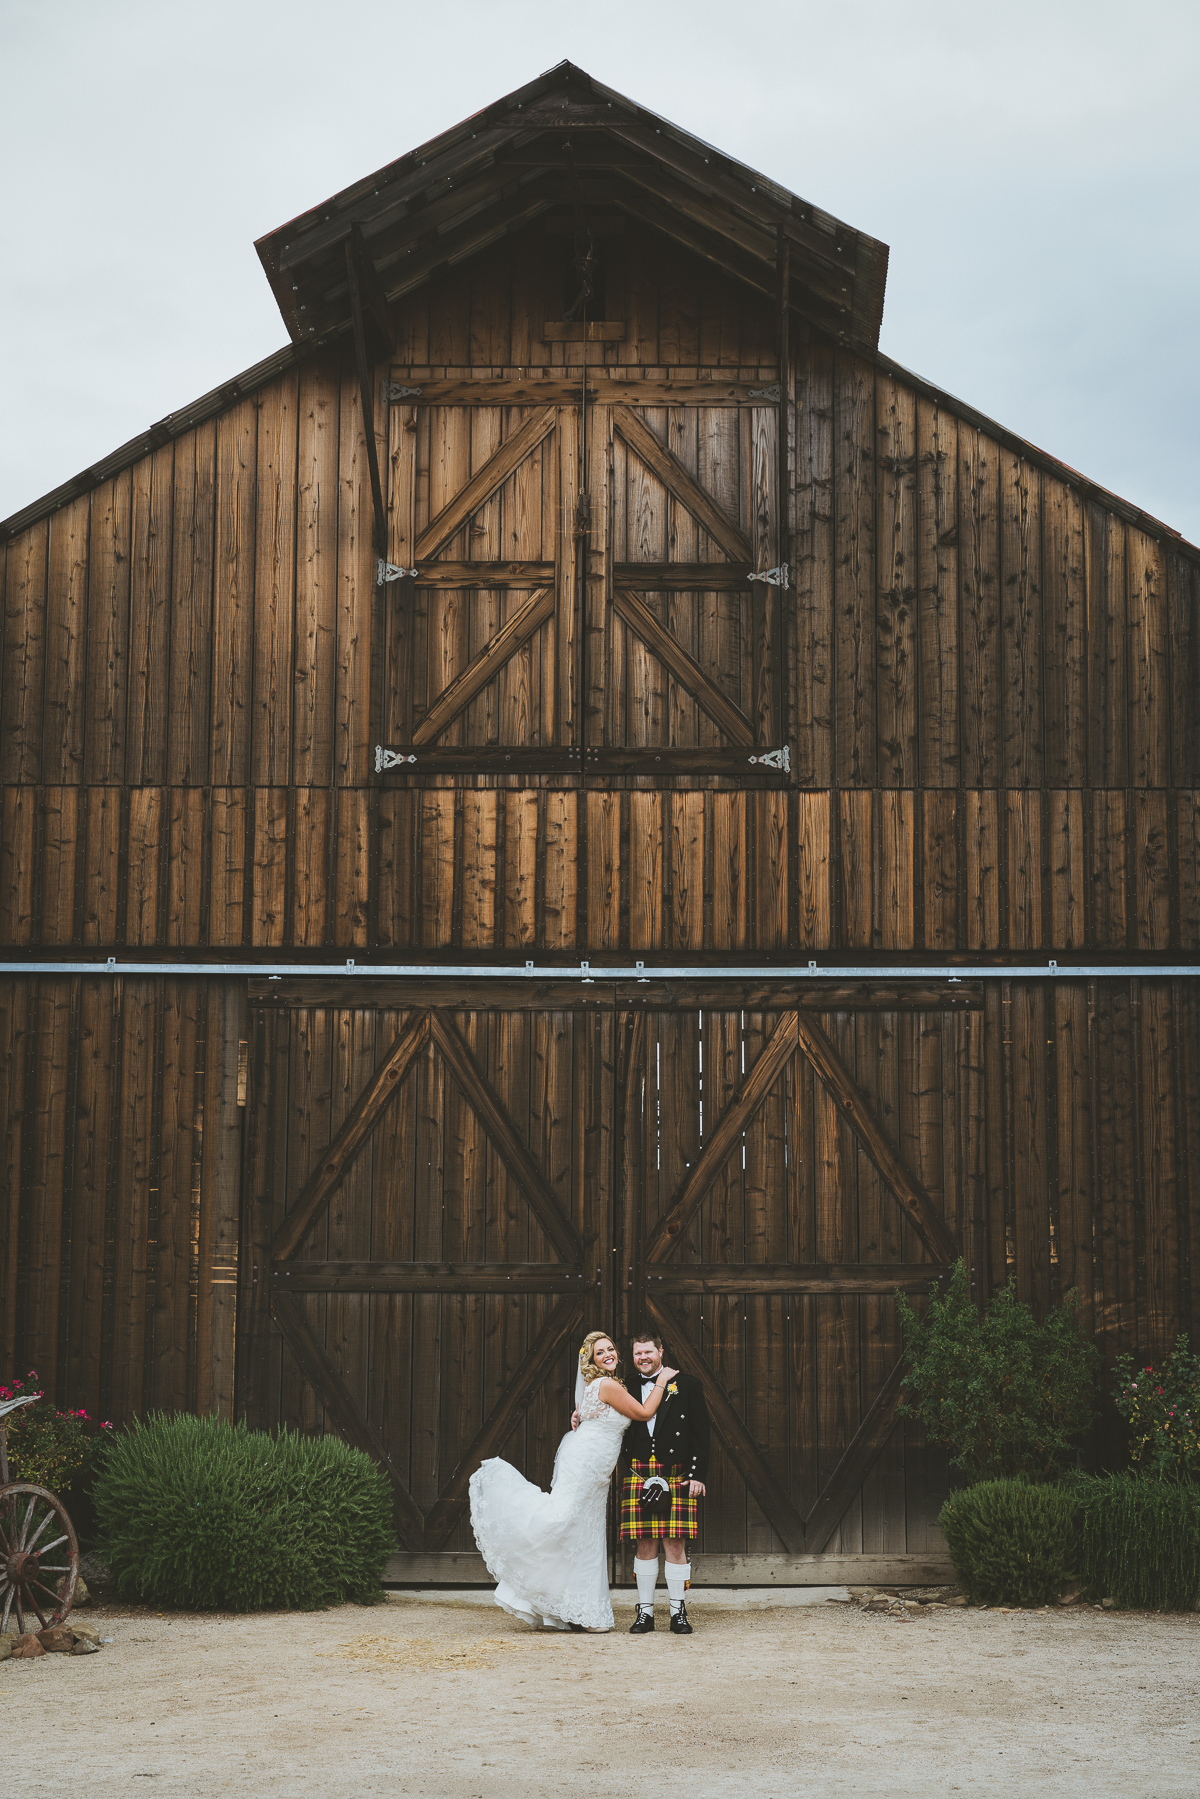 Happy couple posing in front of wedding barn